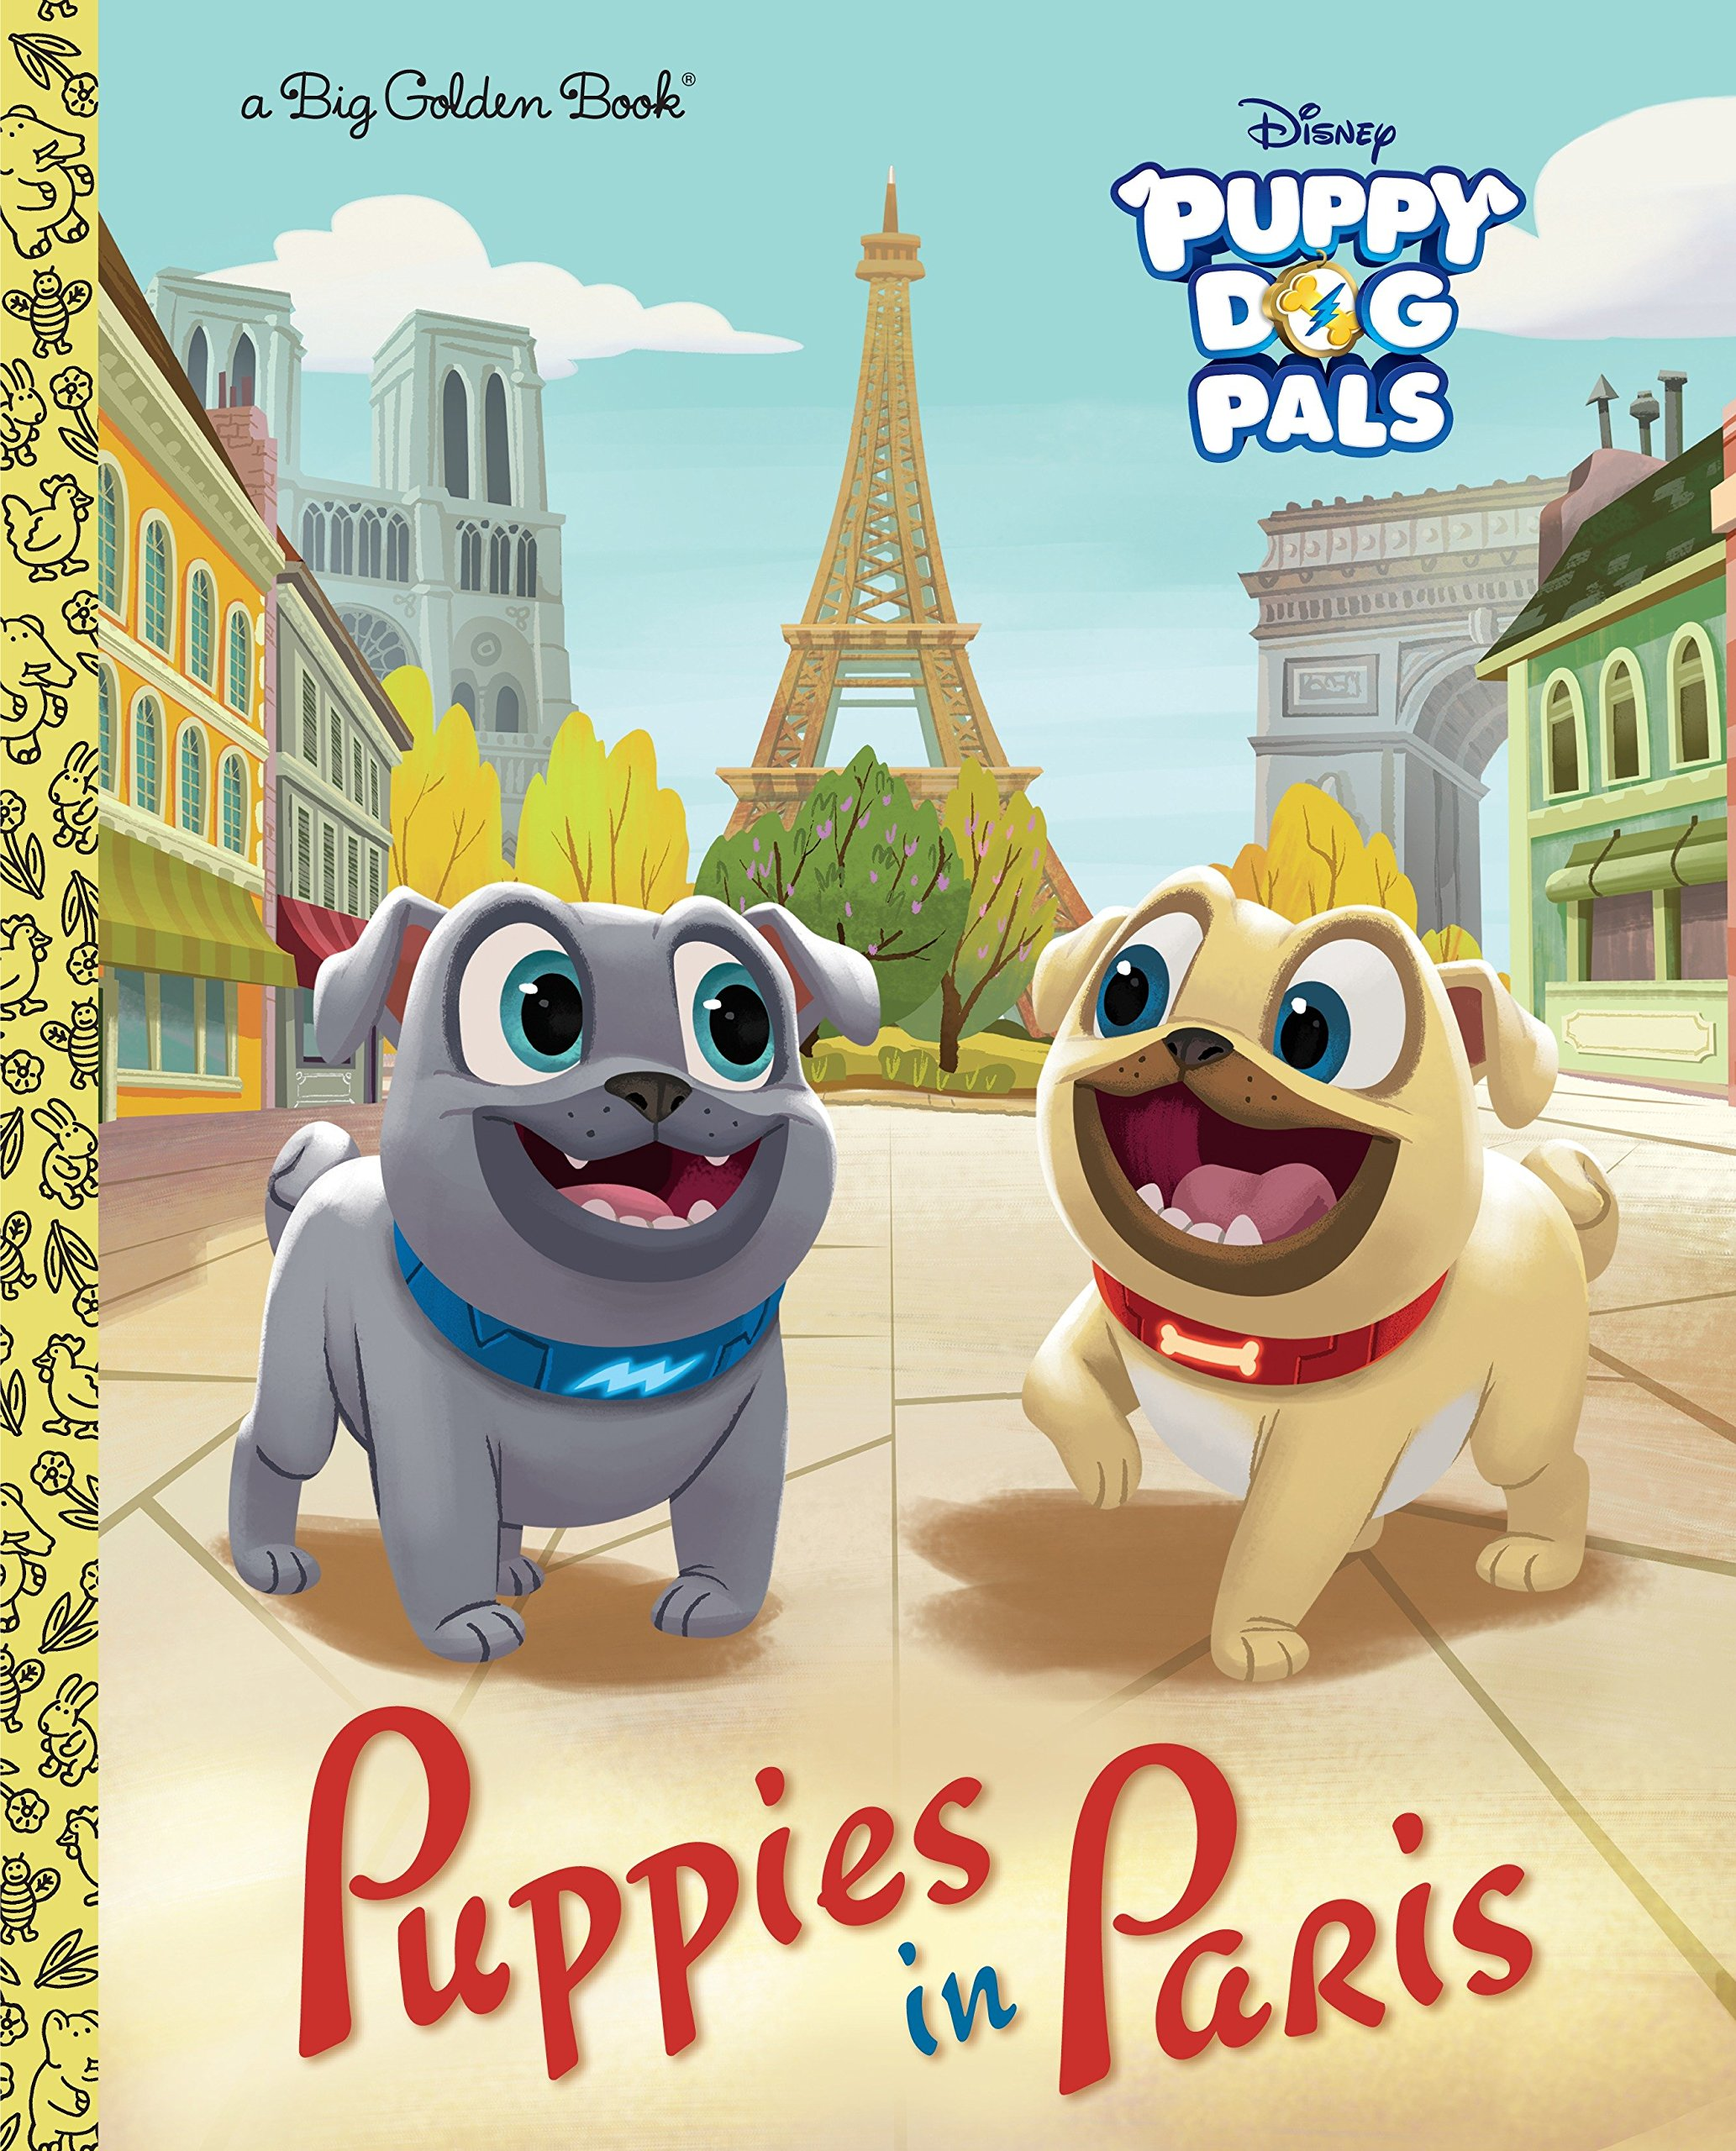 Puppies in Paris (Disney Junior: Puppy Dog Pals) (Big Golden Book)  Hardcover – January 23, 2018